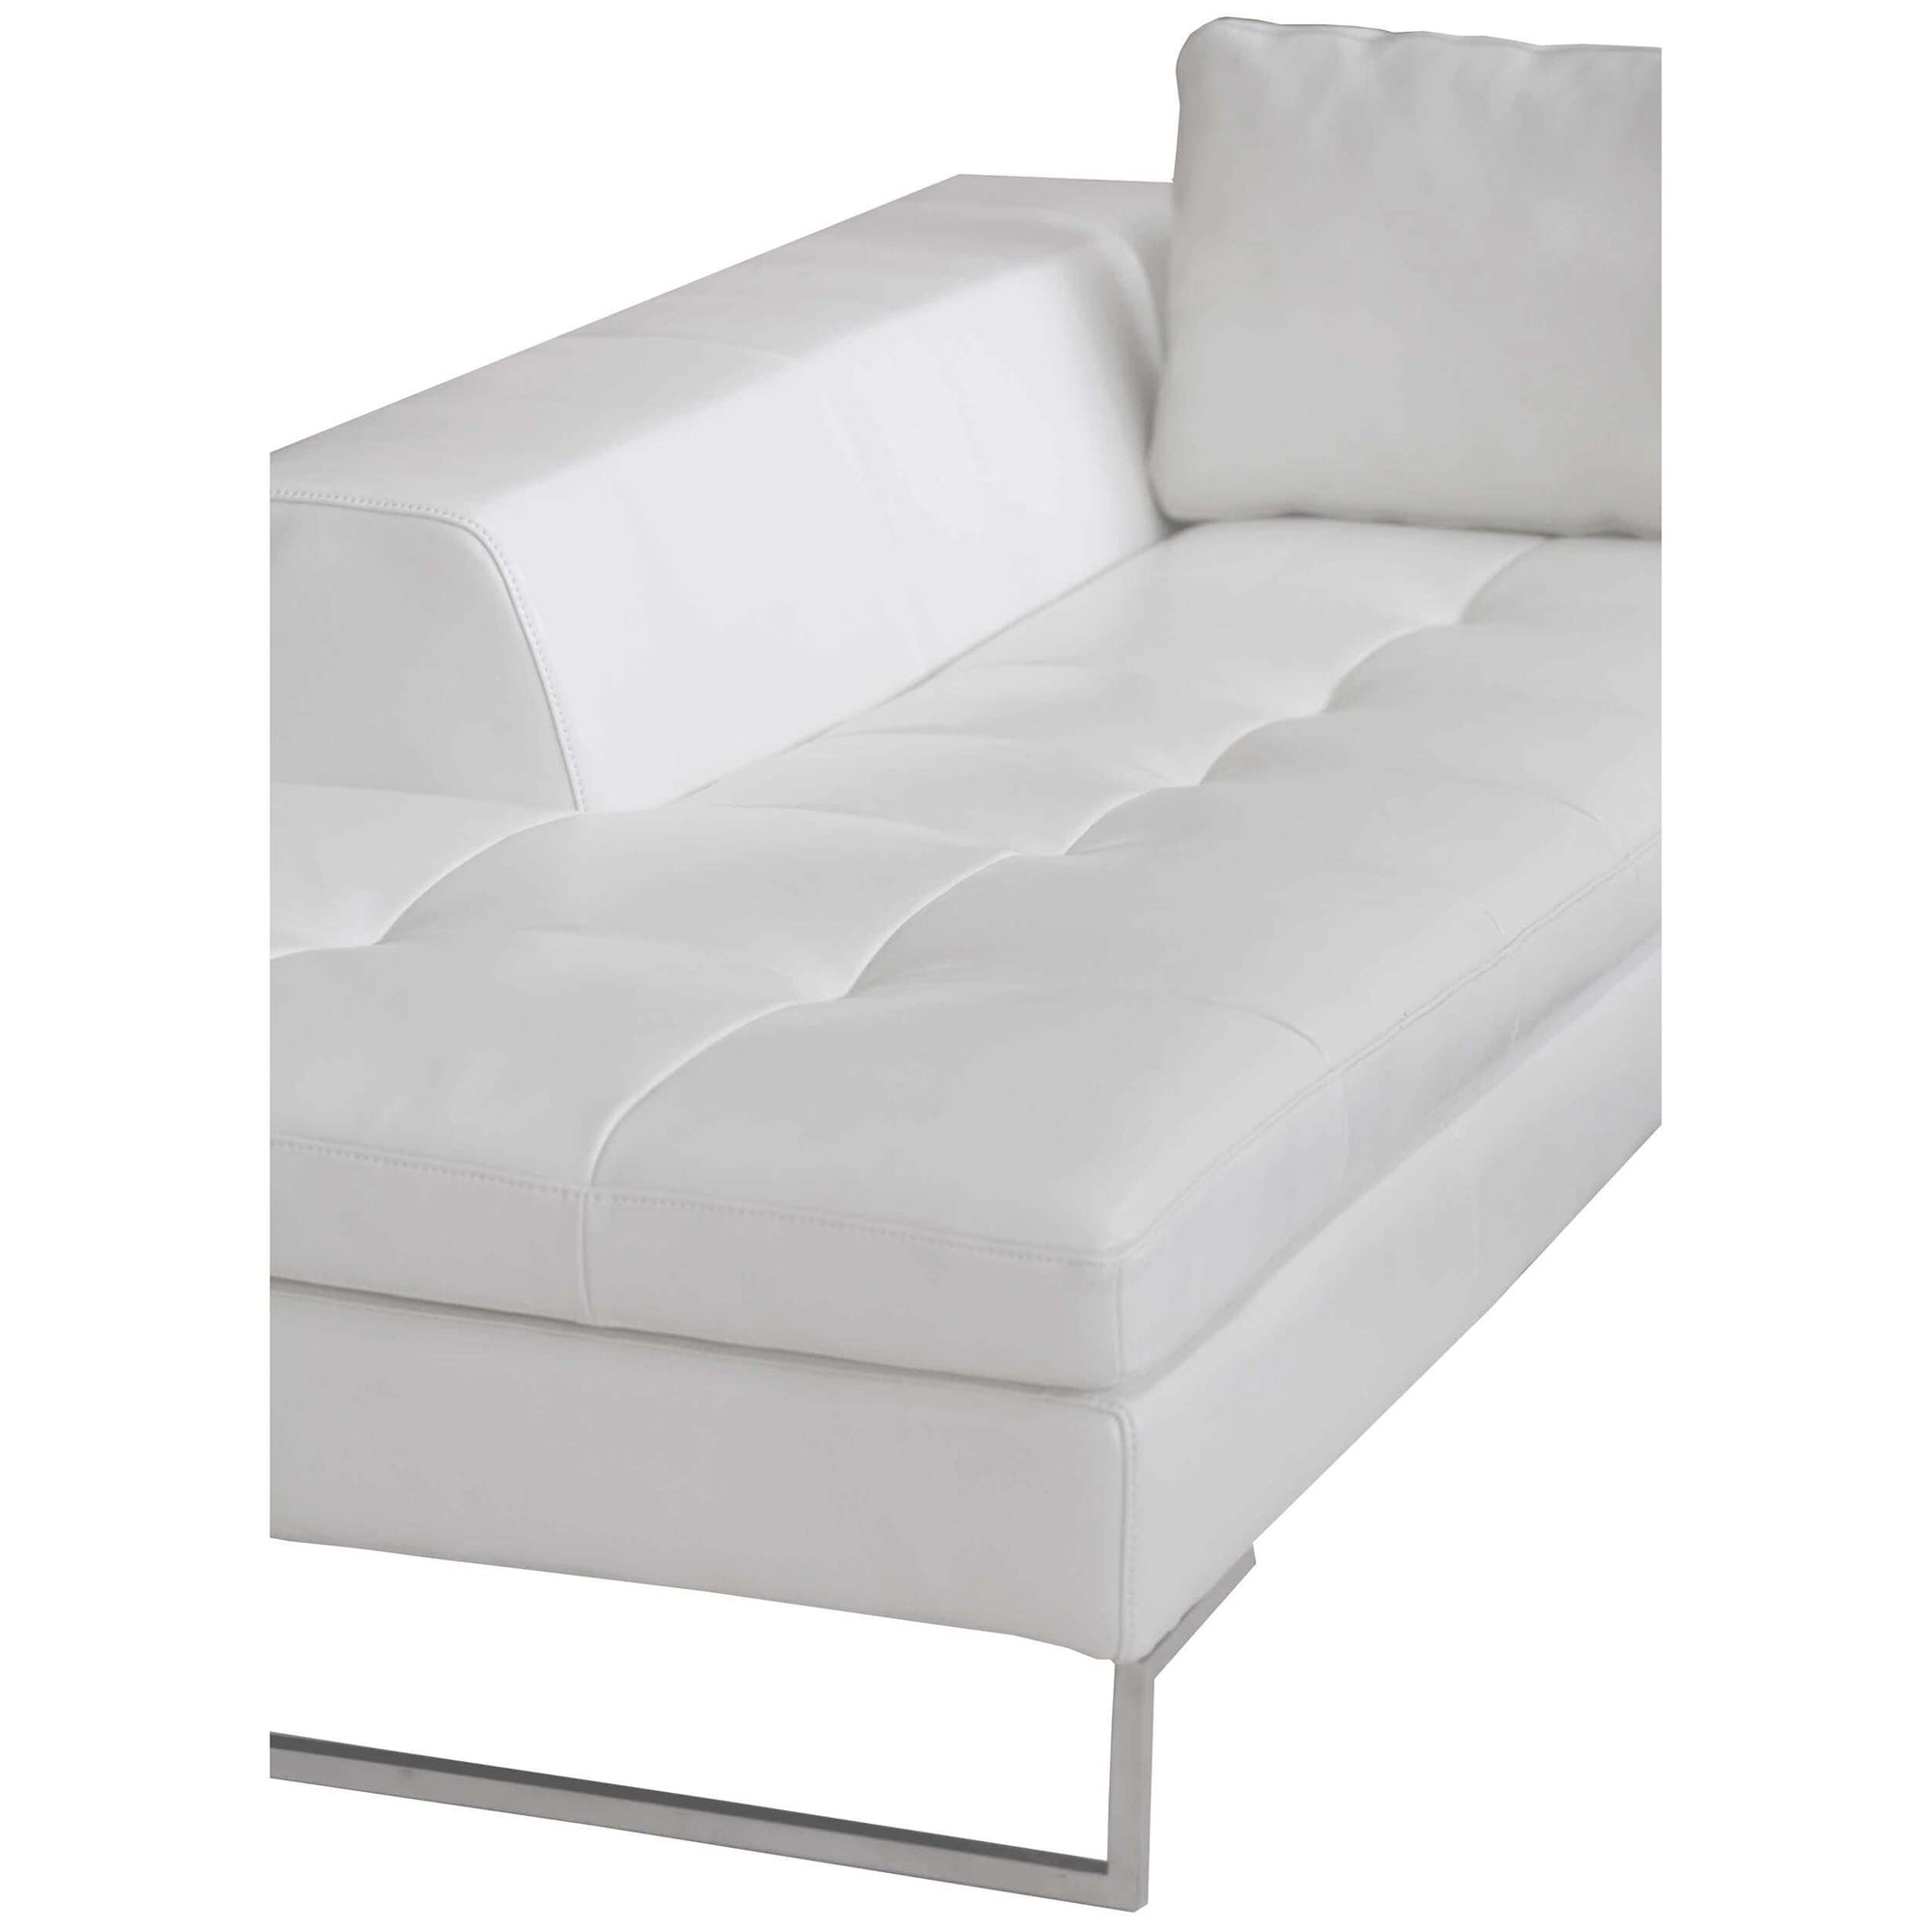 Stupendous London Laf Sectional Shiny White High Fashion Home Ncnpc Chair Design For Home Ncnpcorg